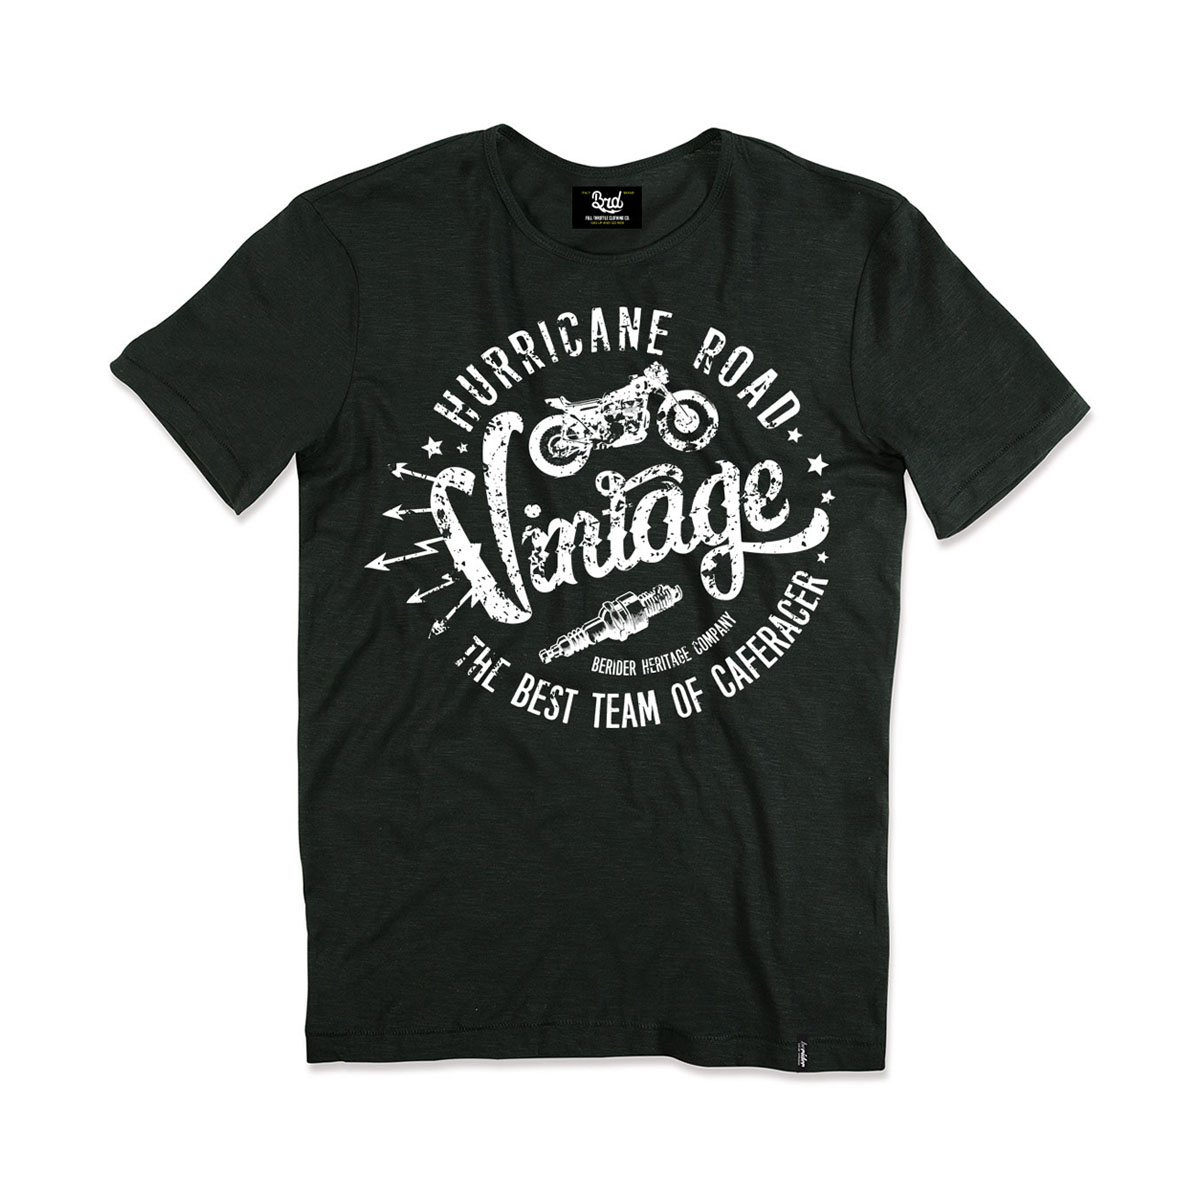 T-shirt Vintage Hurricane Road